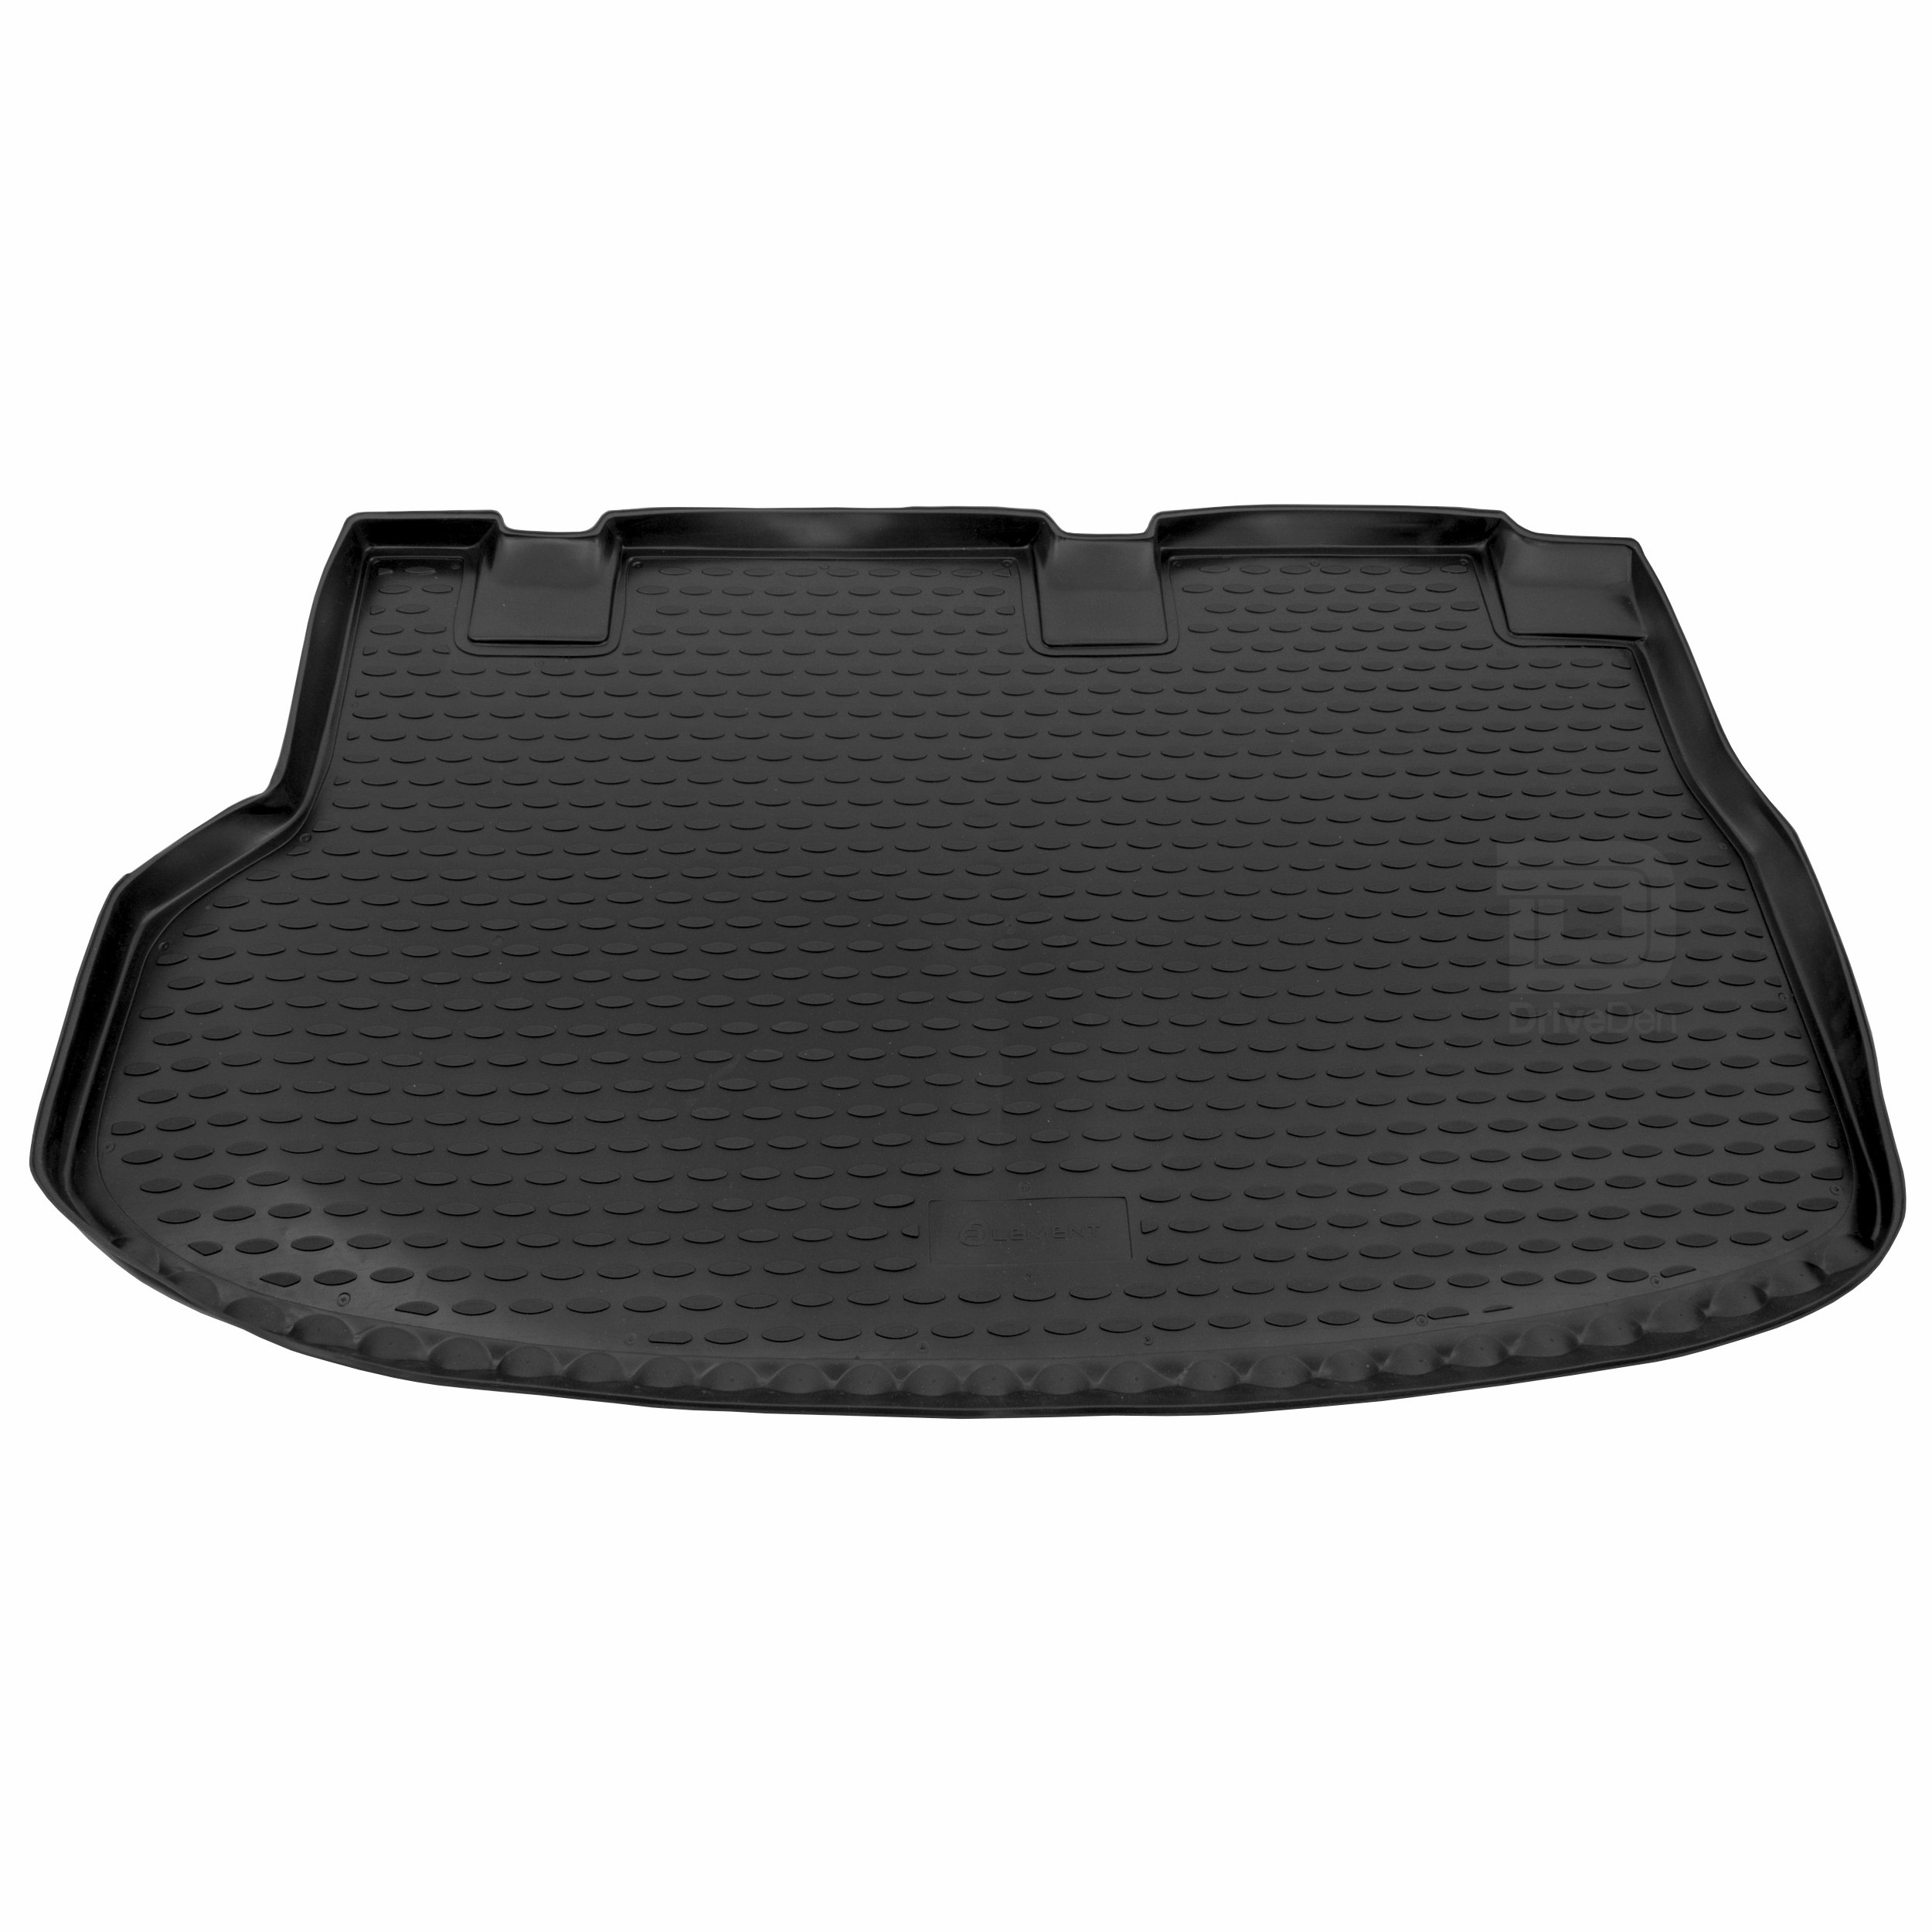 Heavy Duty Rubber Car Boot Liner Mat for Hyundai I800 All Years